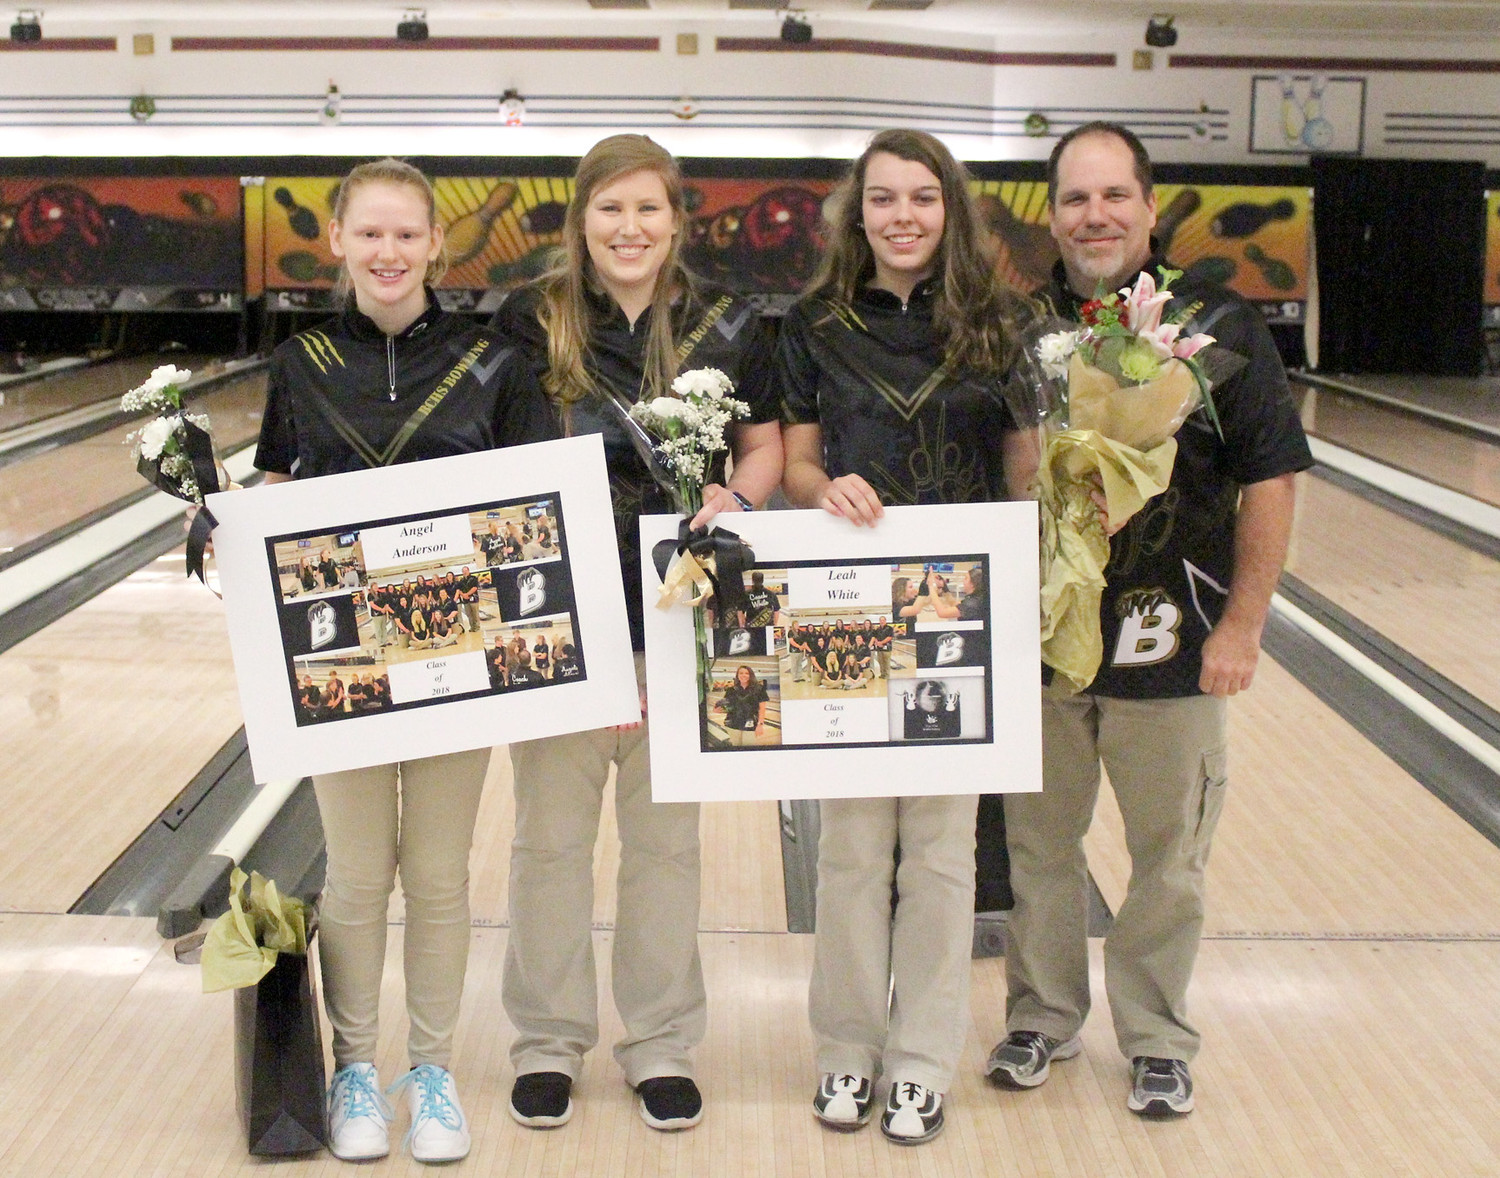 BRADLEY CENTRAL honored its lone two senior bowlers before a victory against Rhea County this week. Pictured from left, senior Angel Anderson, head coach Chelsea Hancock, senior Leah White and assistant coach Aaron White.